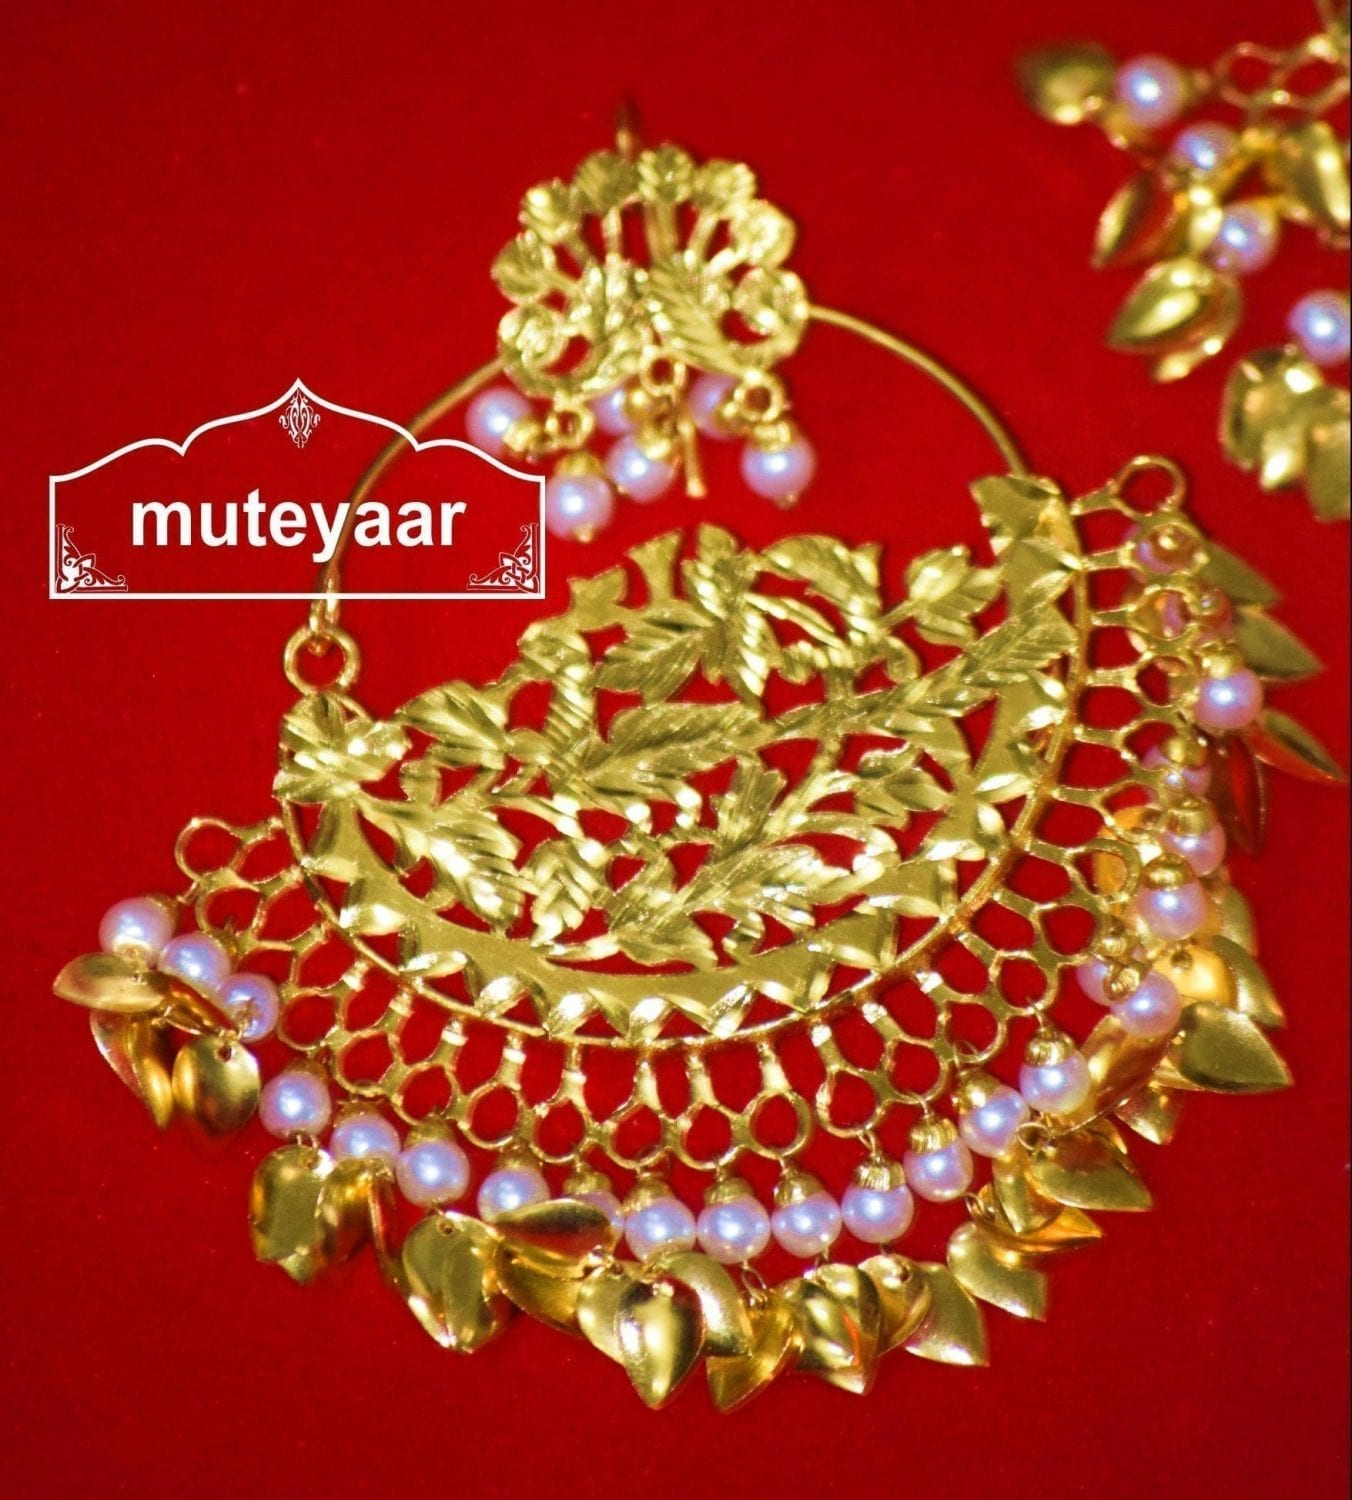 24 Ct. Gold Plated Traditional Punjabi Jewellery Morewali Earrings Tikka Set J0197 3